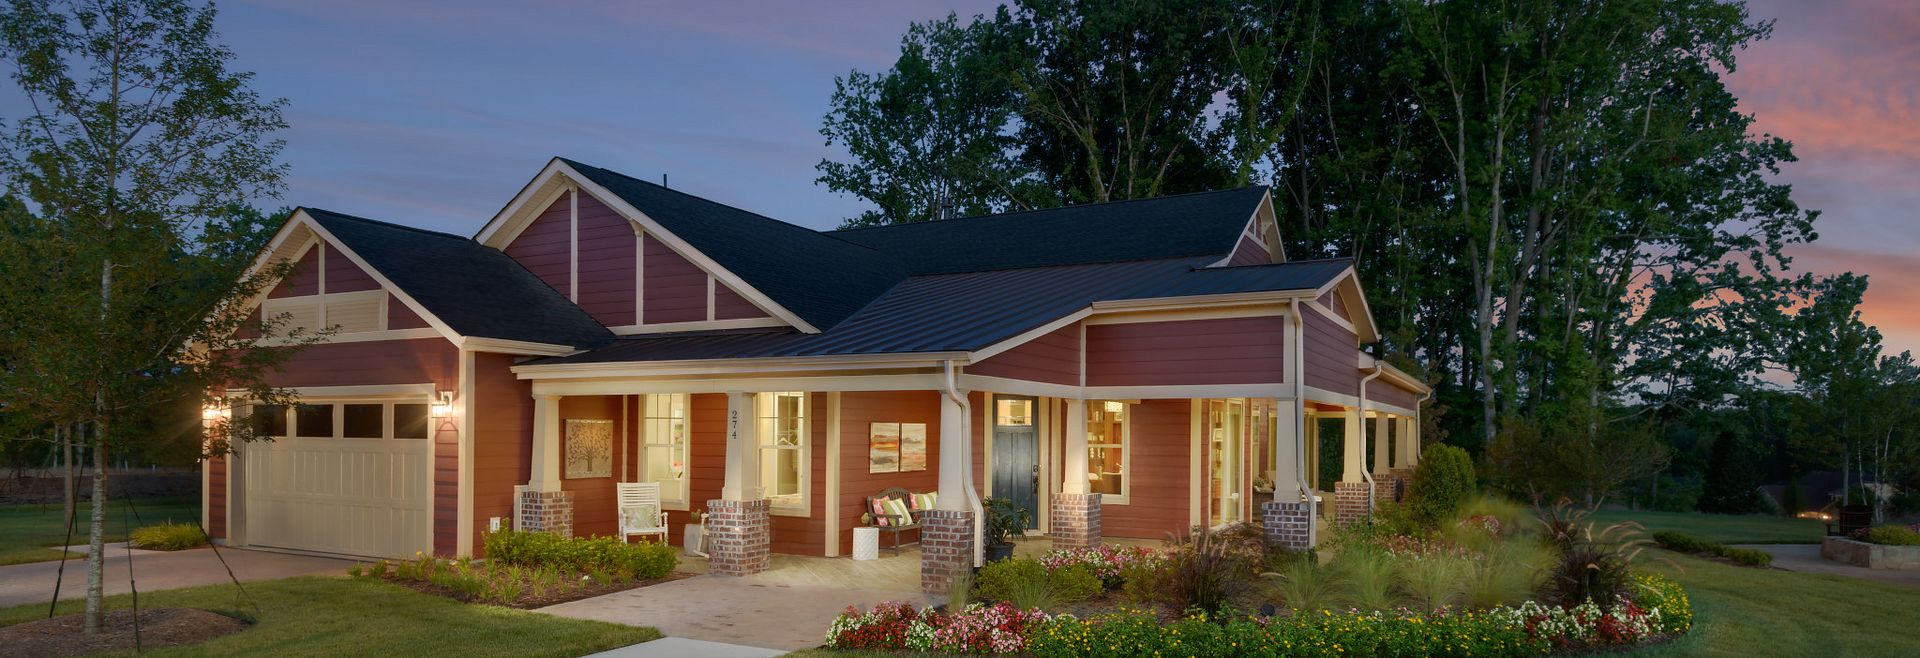 Trilogy Lake Norman Captivate Plan Exterior